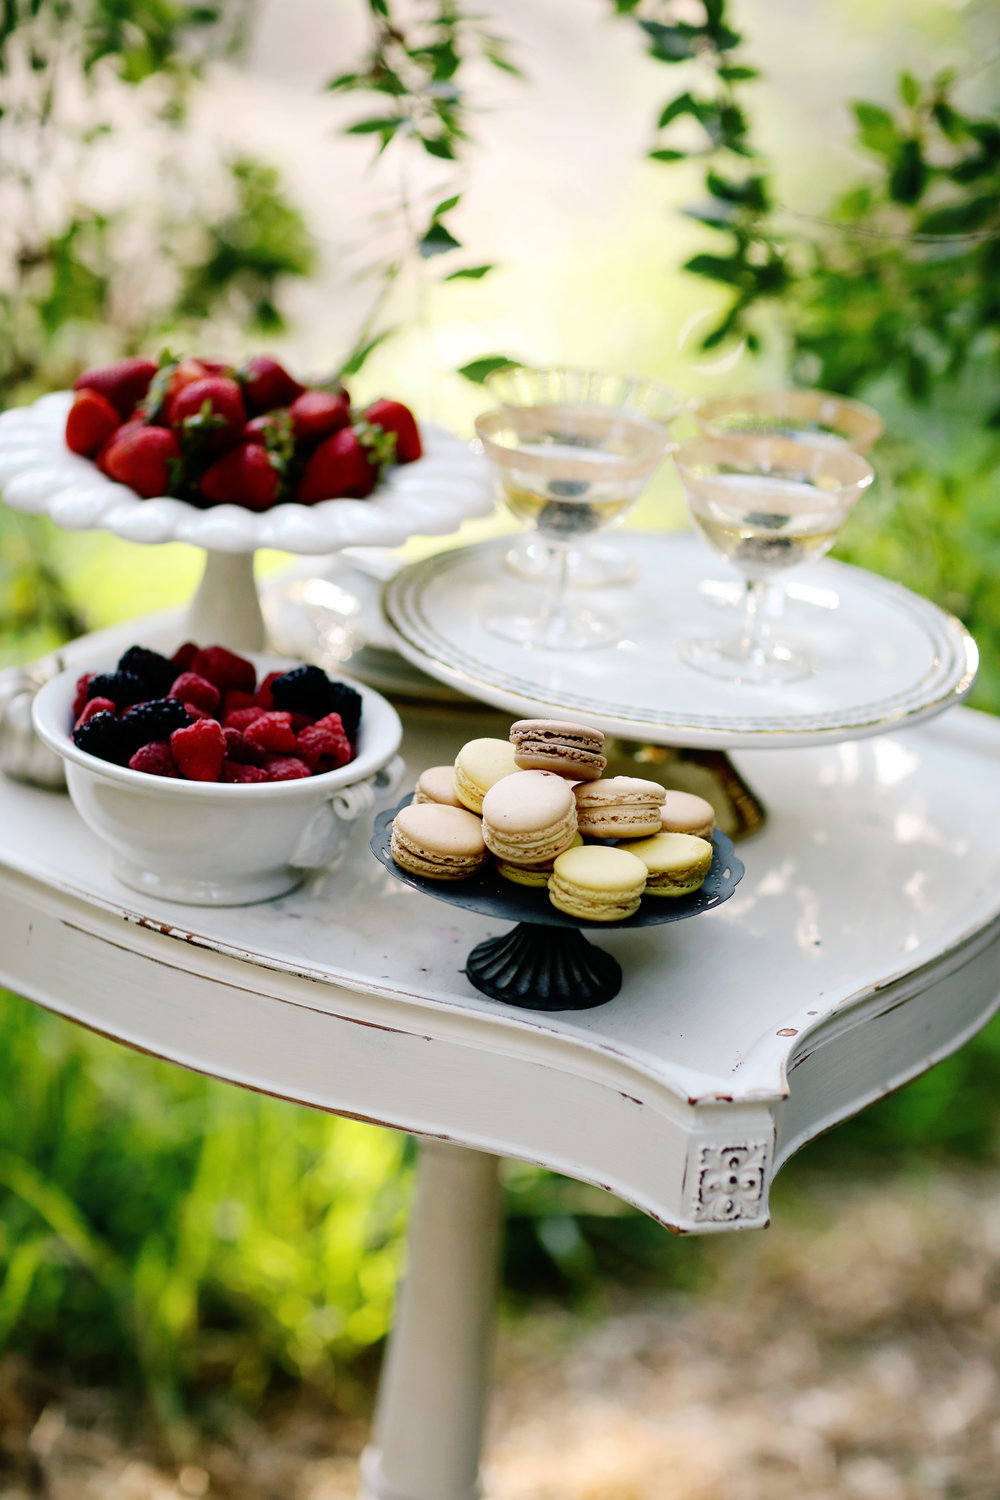 Vintage antique white wooden side table with desserts on the top for a wedding. Macaroons on milk glass pedestals.